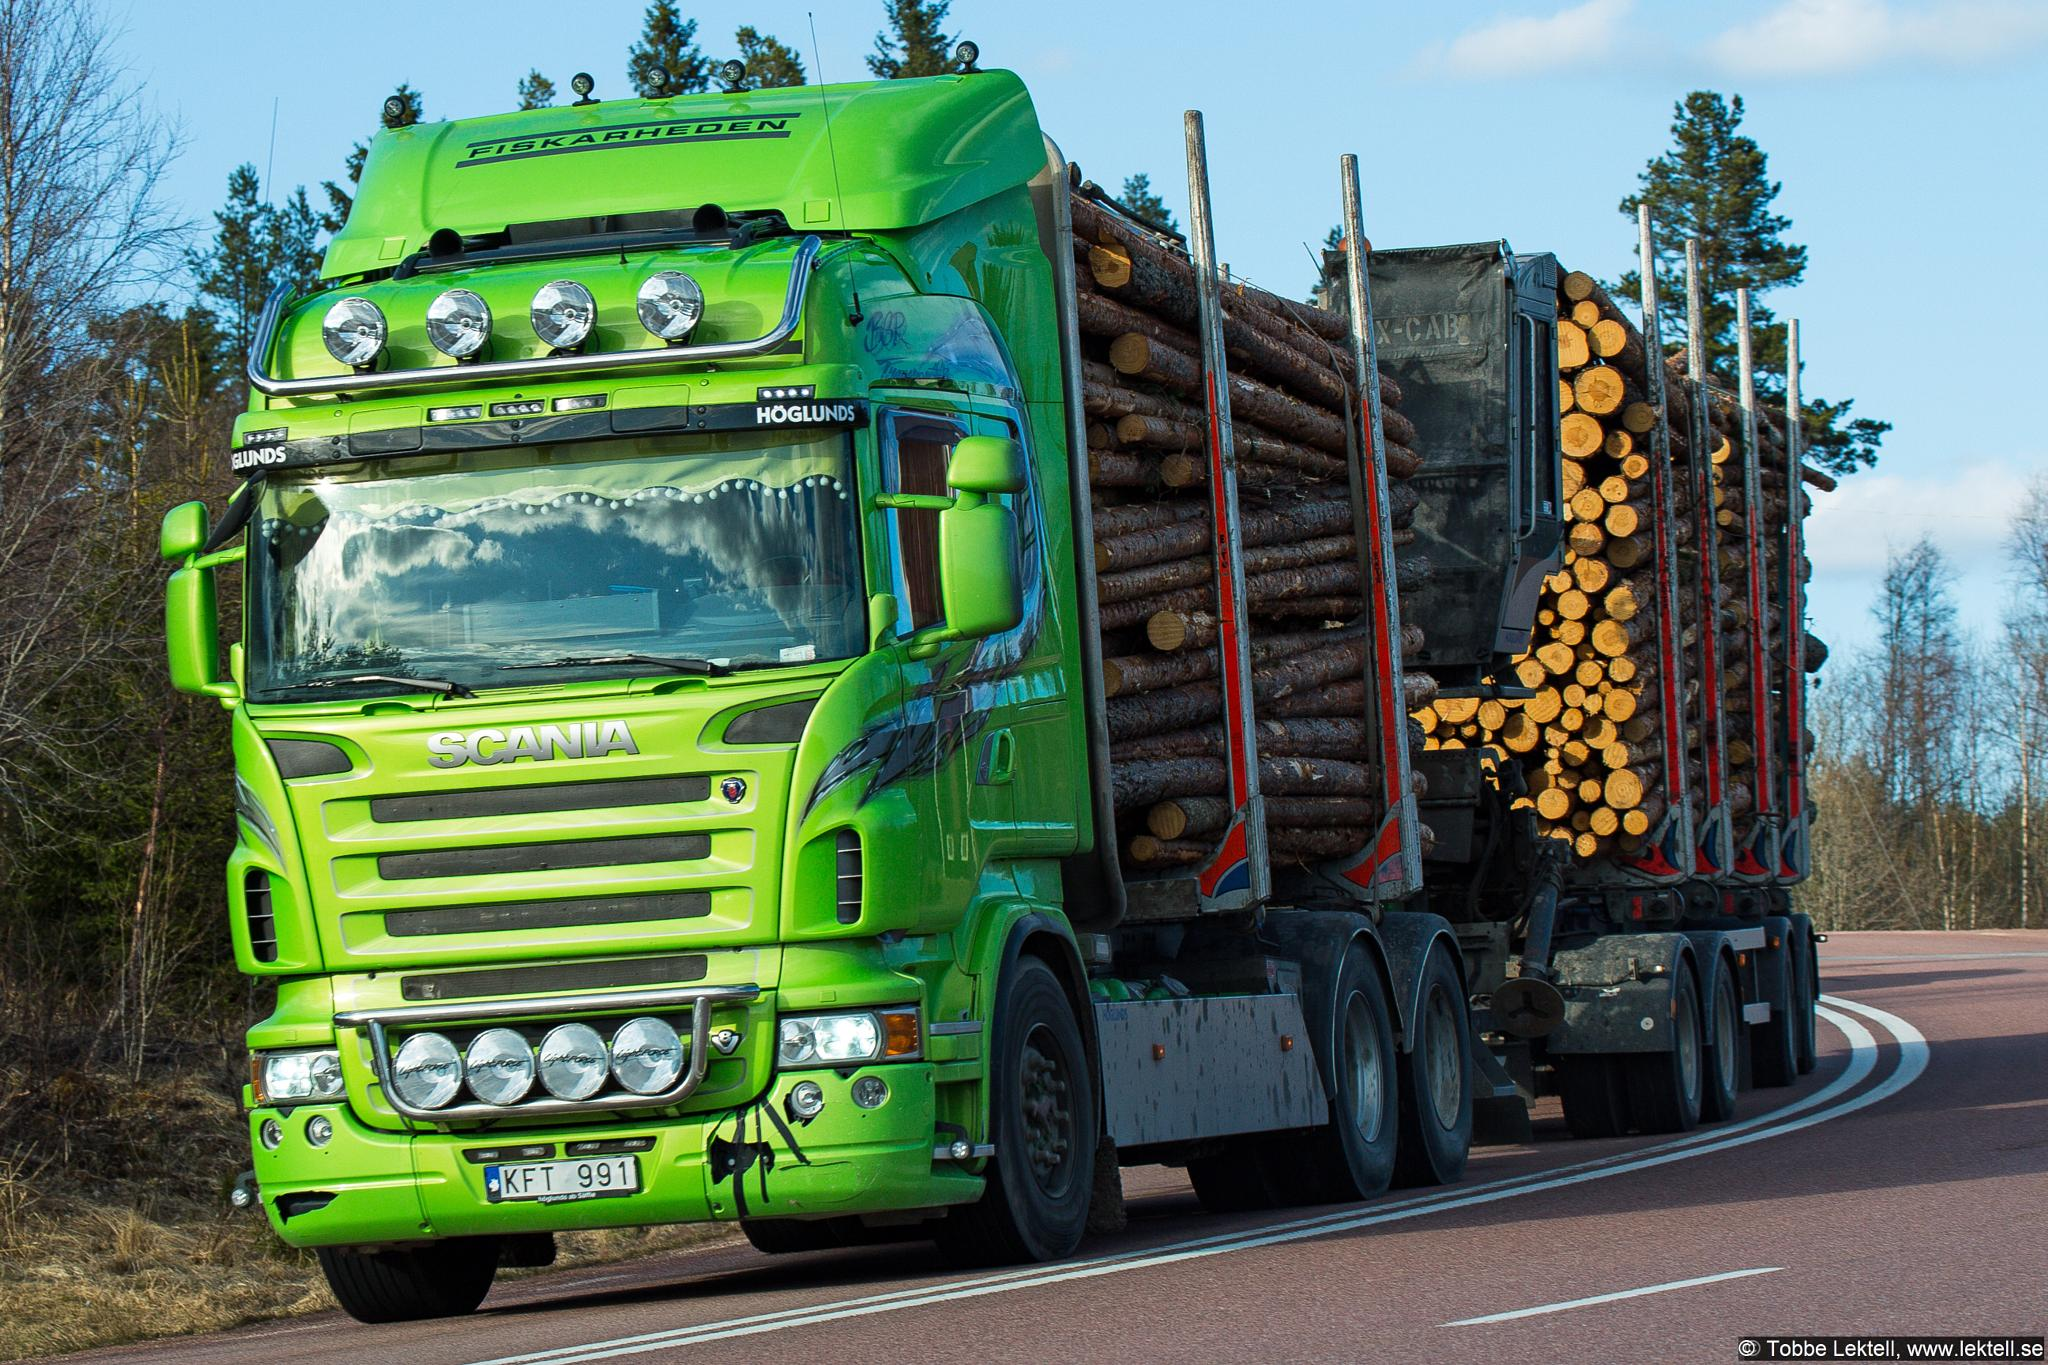 Very green Scania by tobbe.lektell